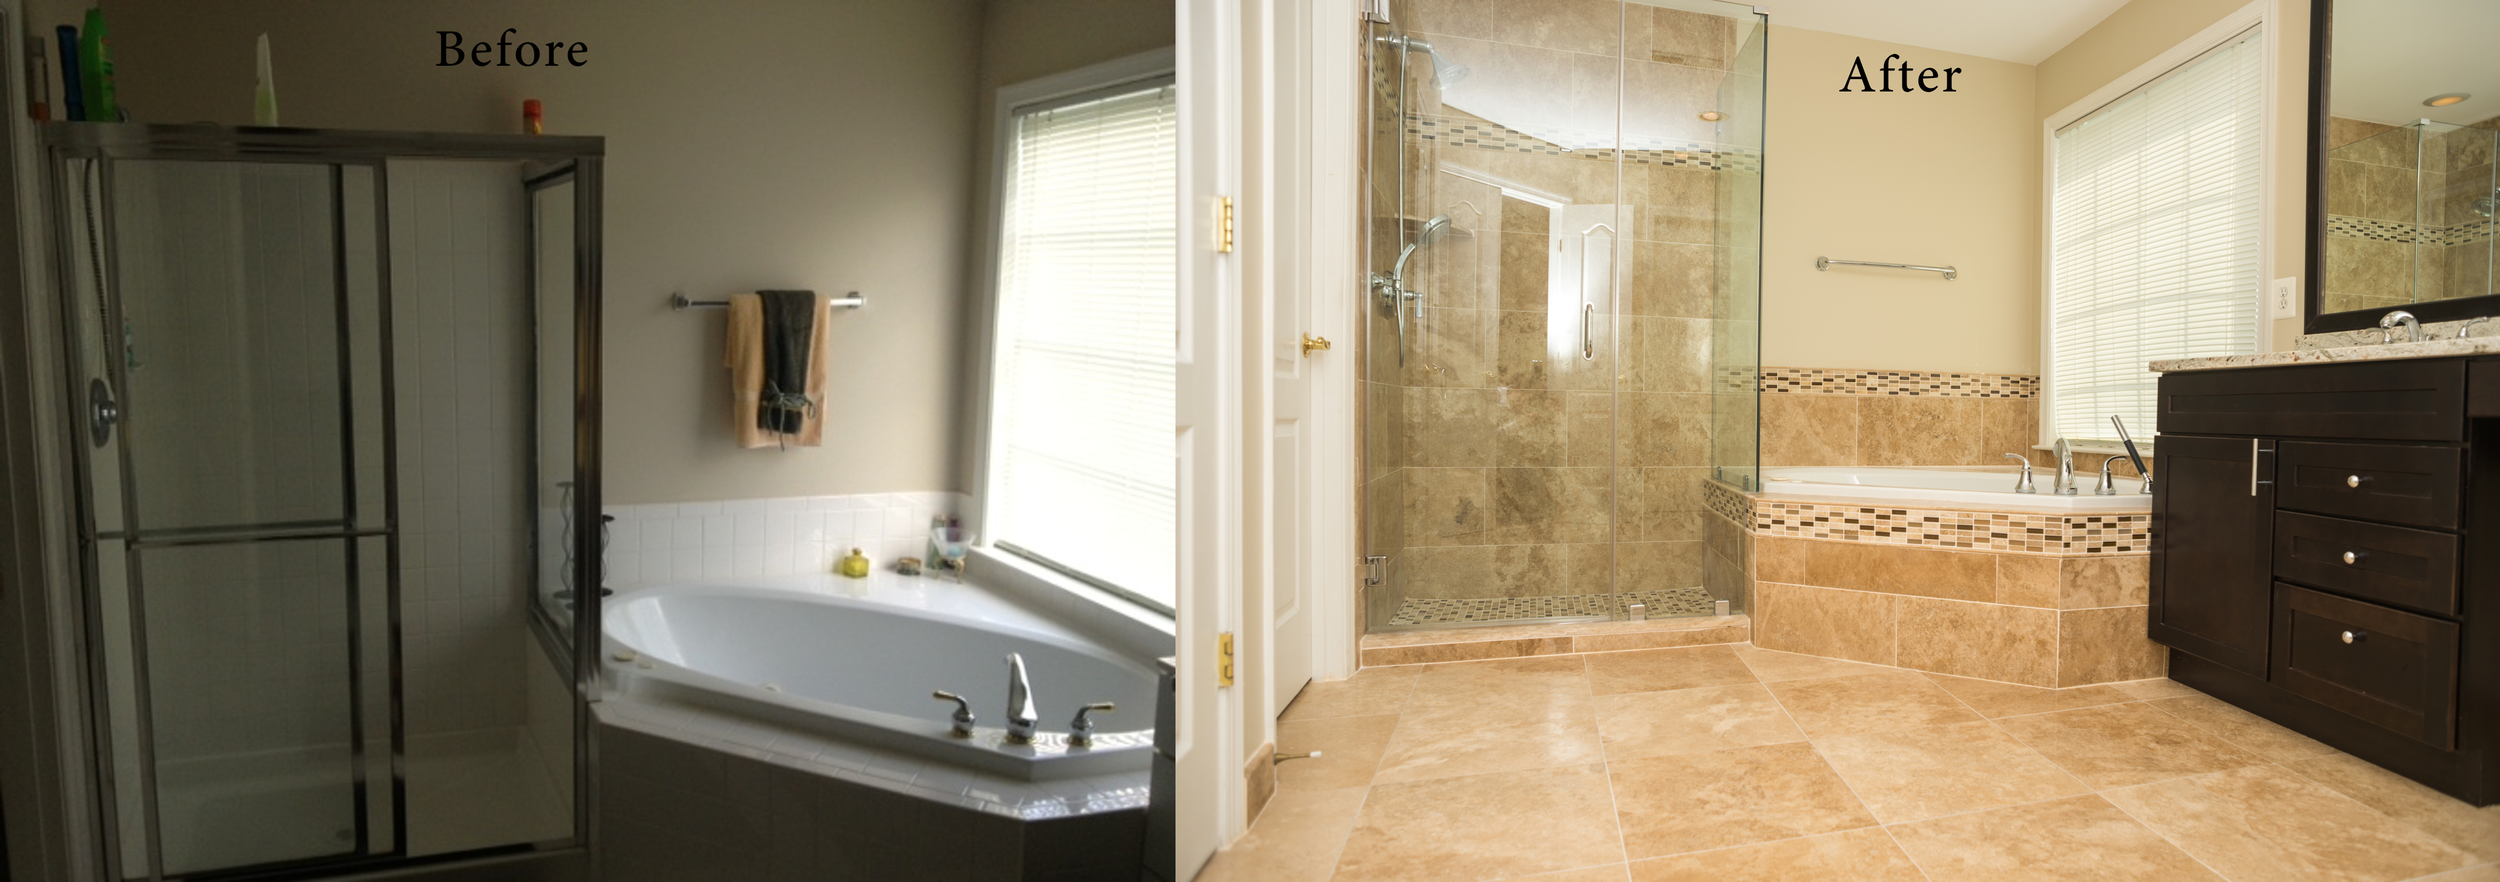 Before and after remodeling gallery  Euro Design Remodel  remodeler with 20 years of experience